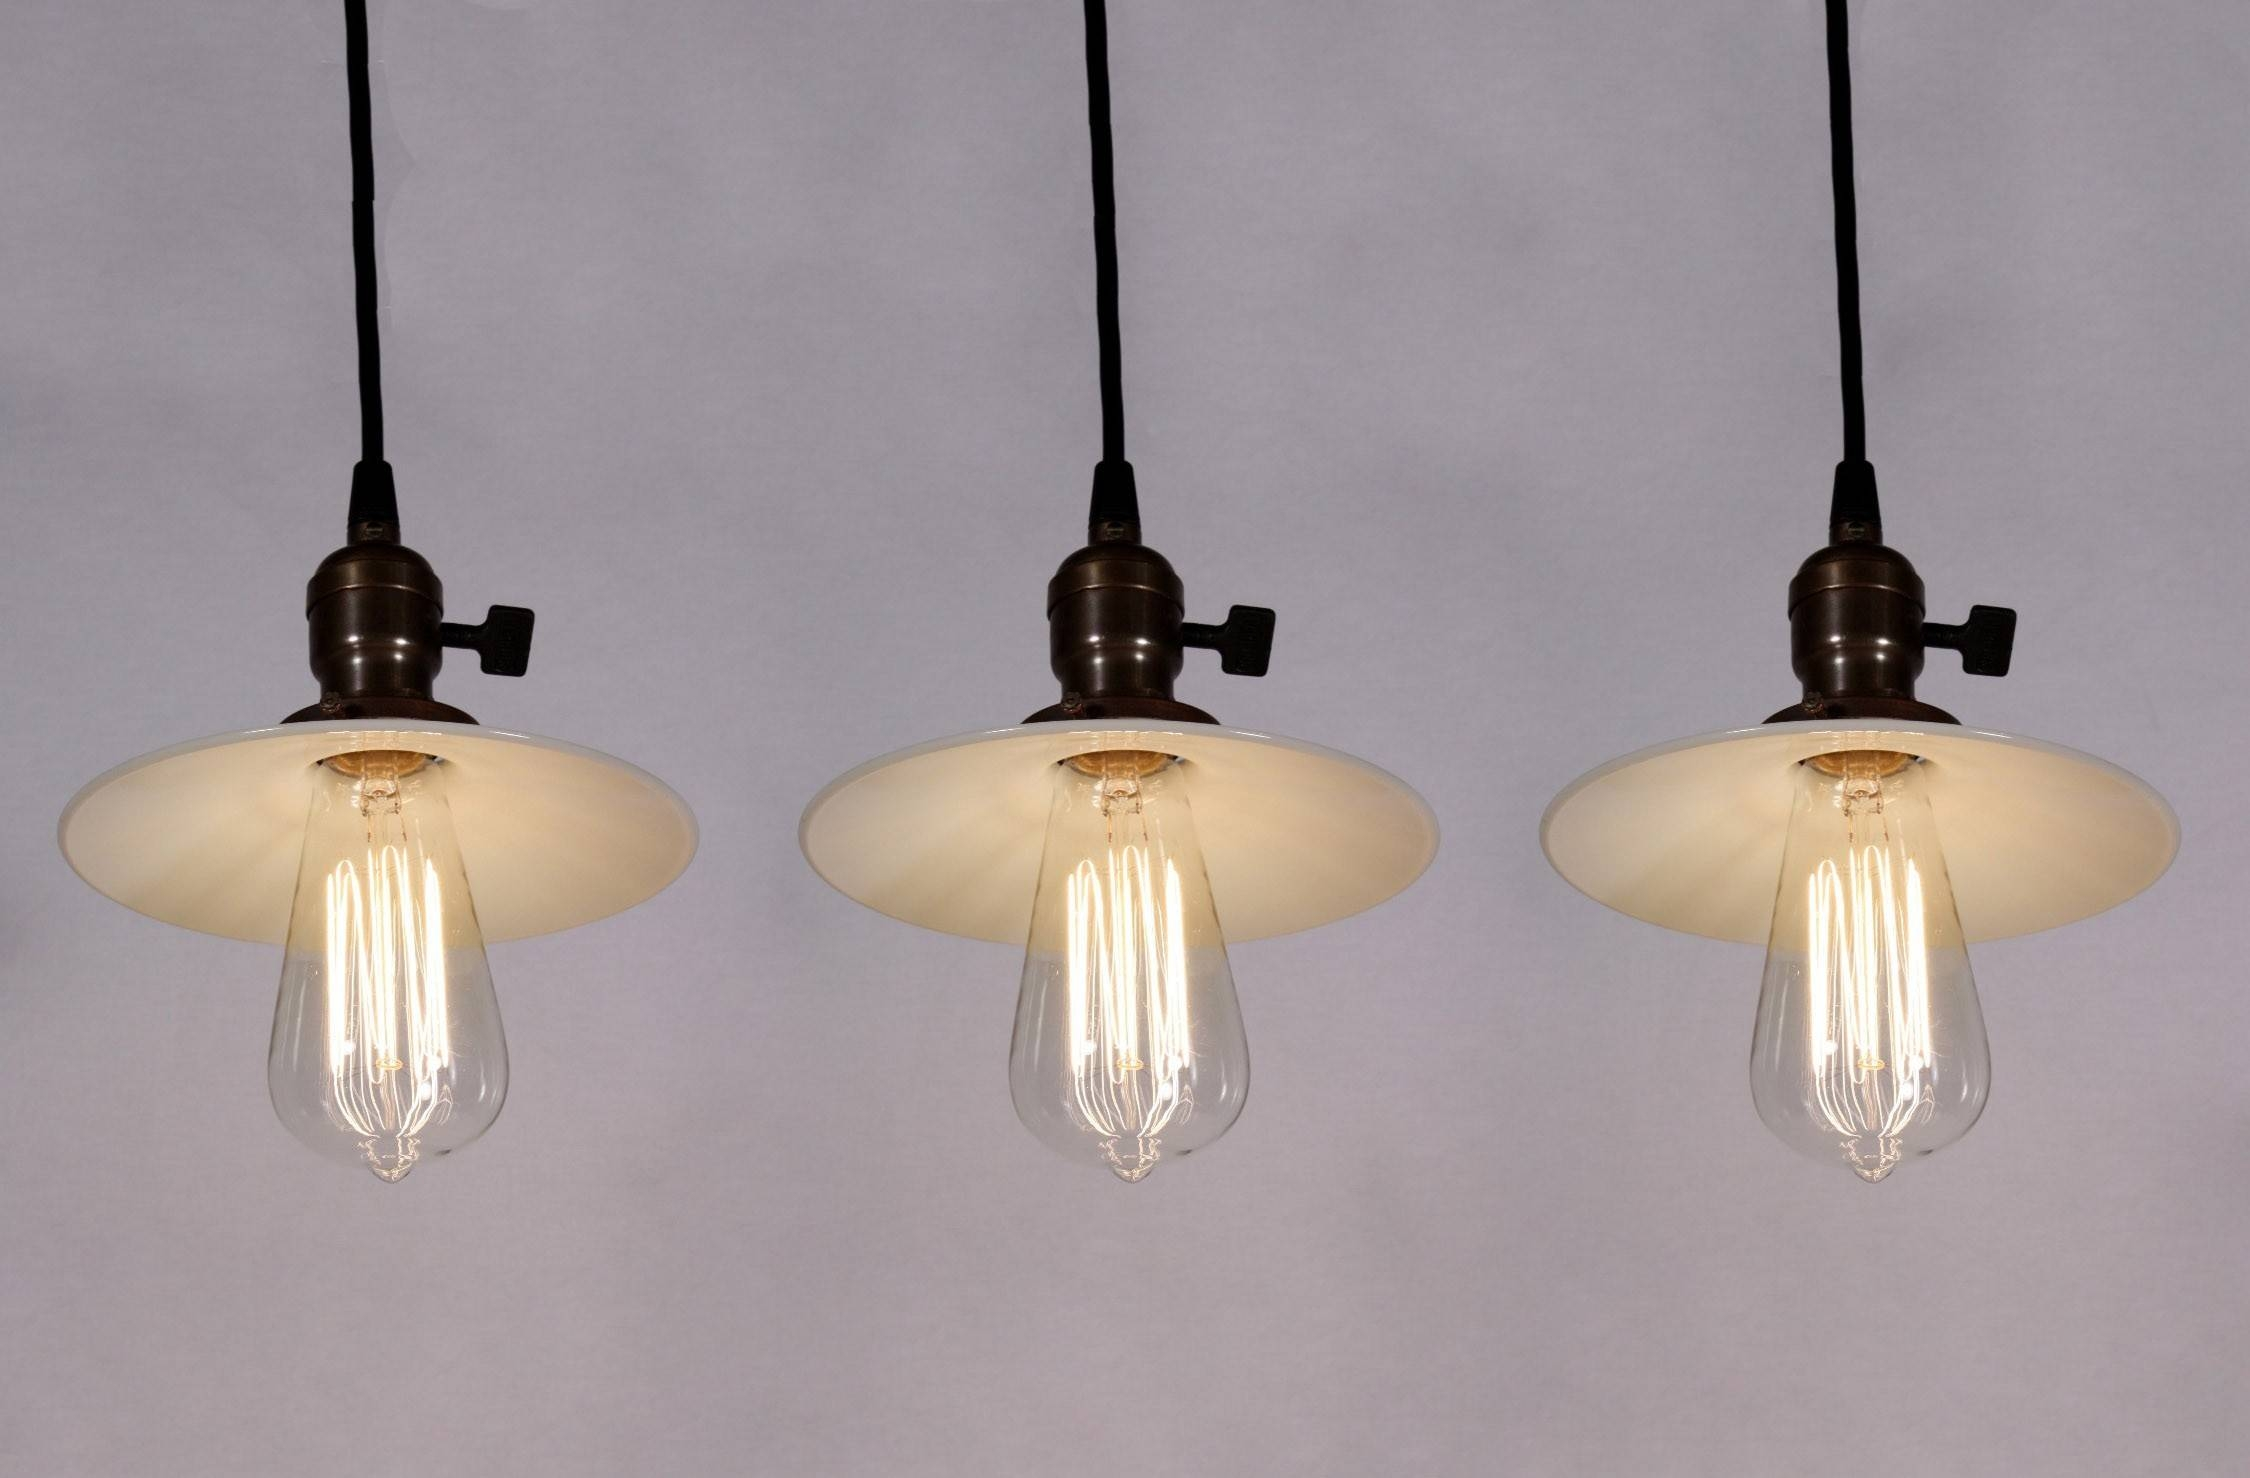 Collection In Milk Glass Pendant Light In Room Decor Inspiration in Milk Glass Pendant Lights Fixtures (Image 5 of 15)